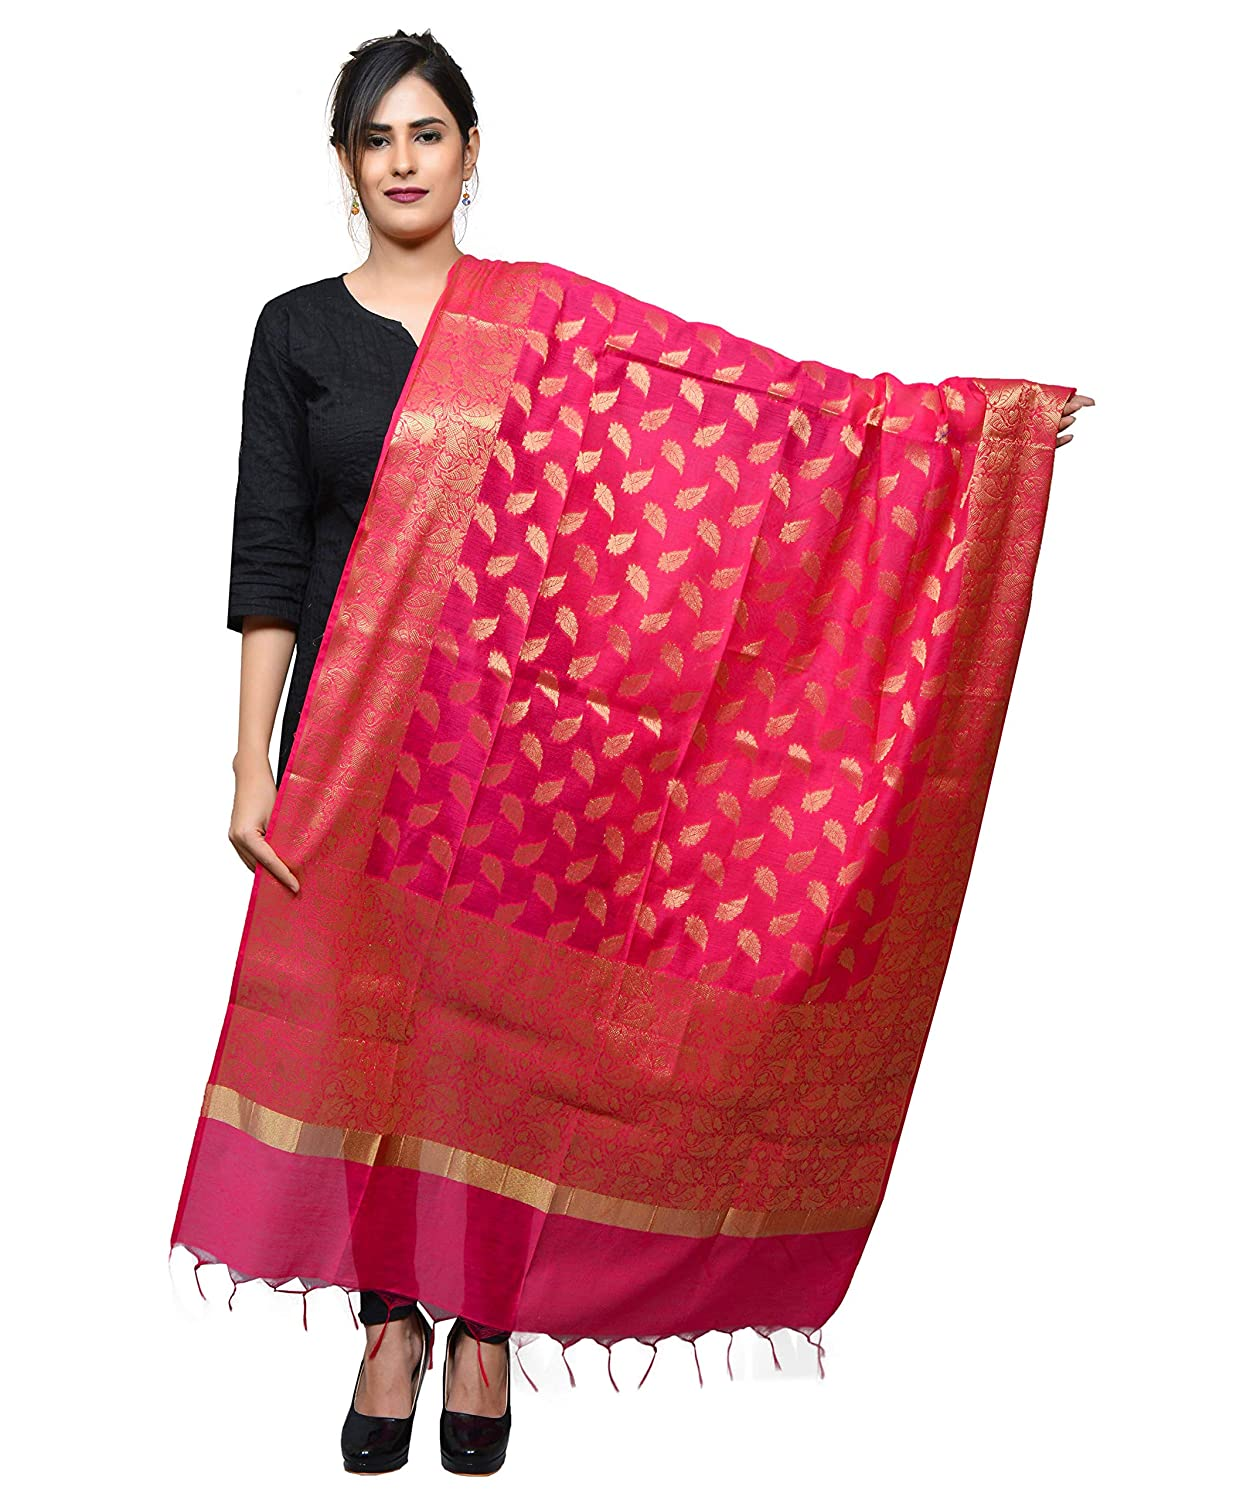 Best Fashionable Dupattas For Womens And Girls in India 2020